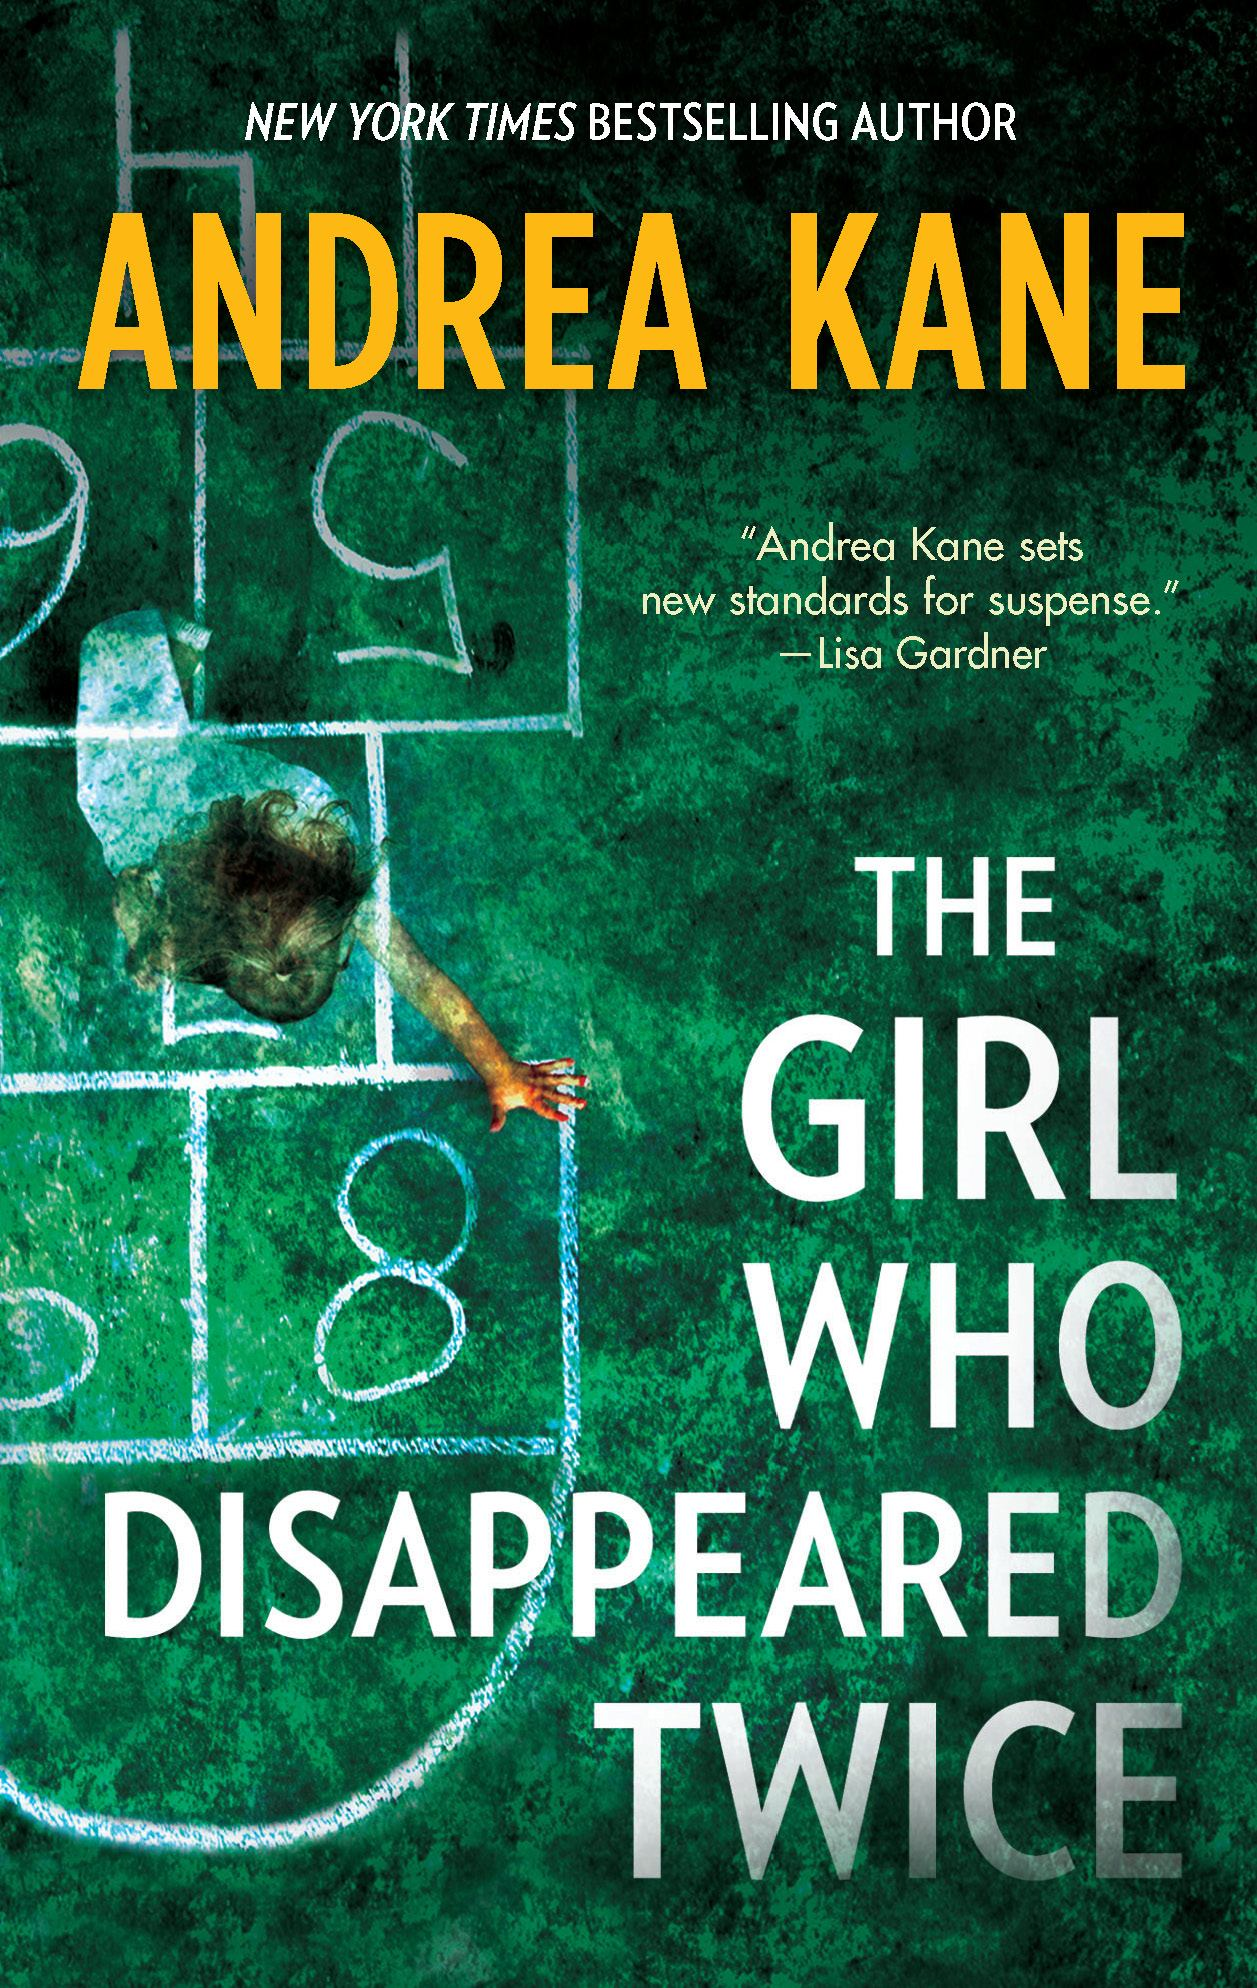 the-girl-who-disappeared-twice Image